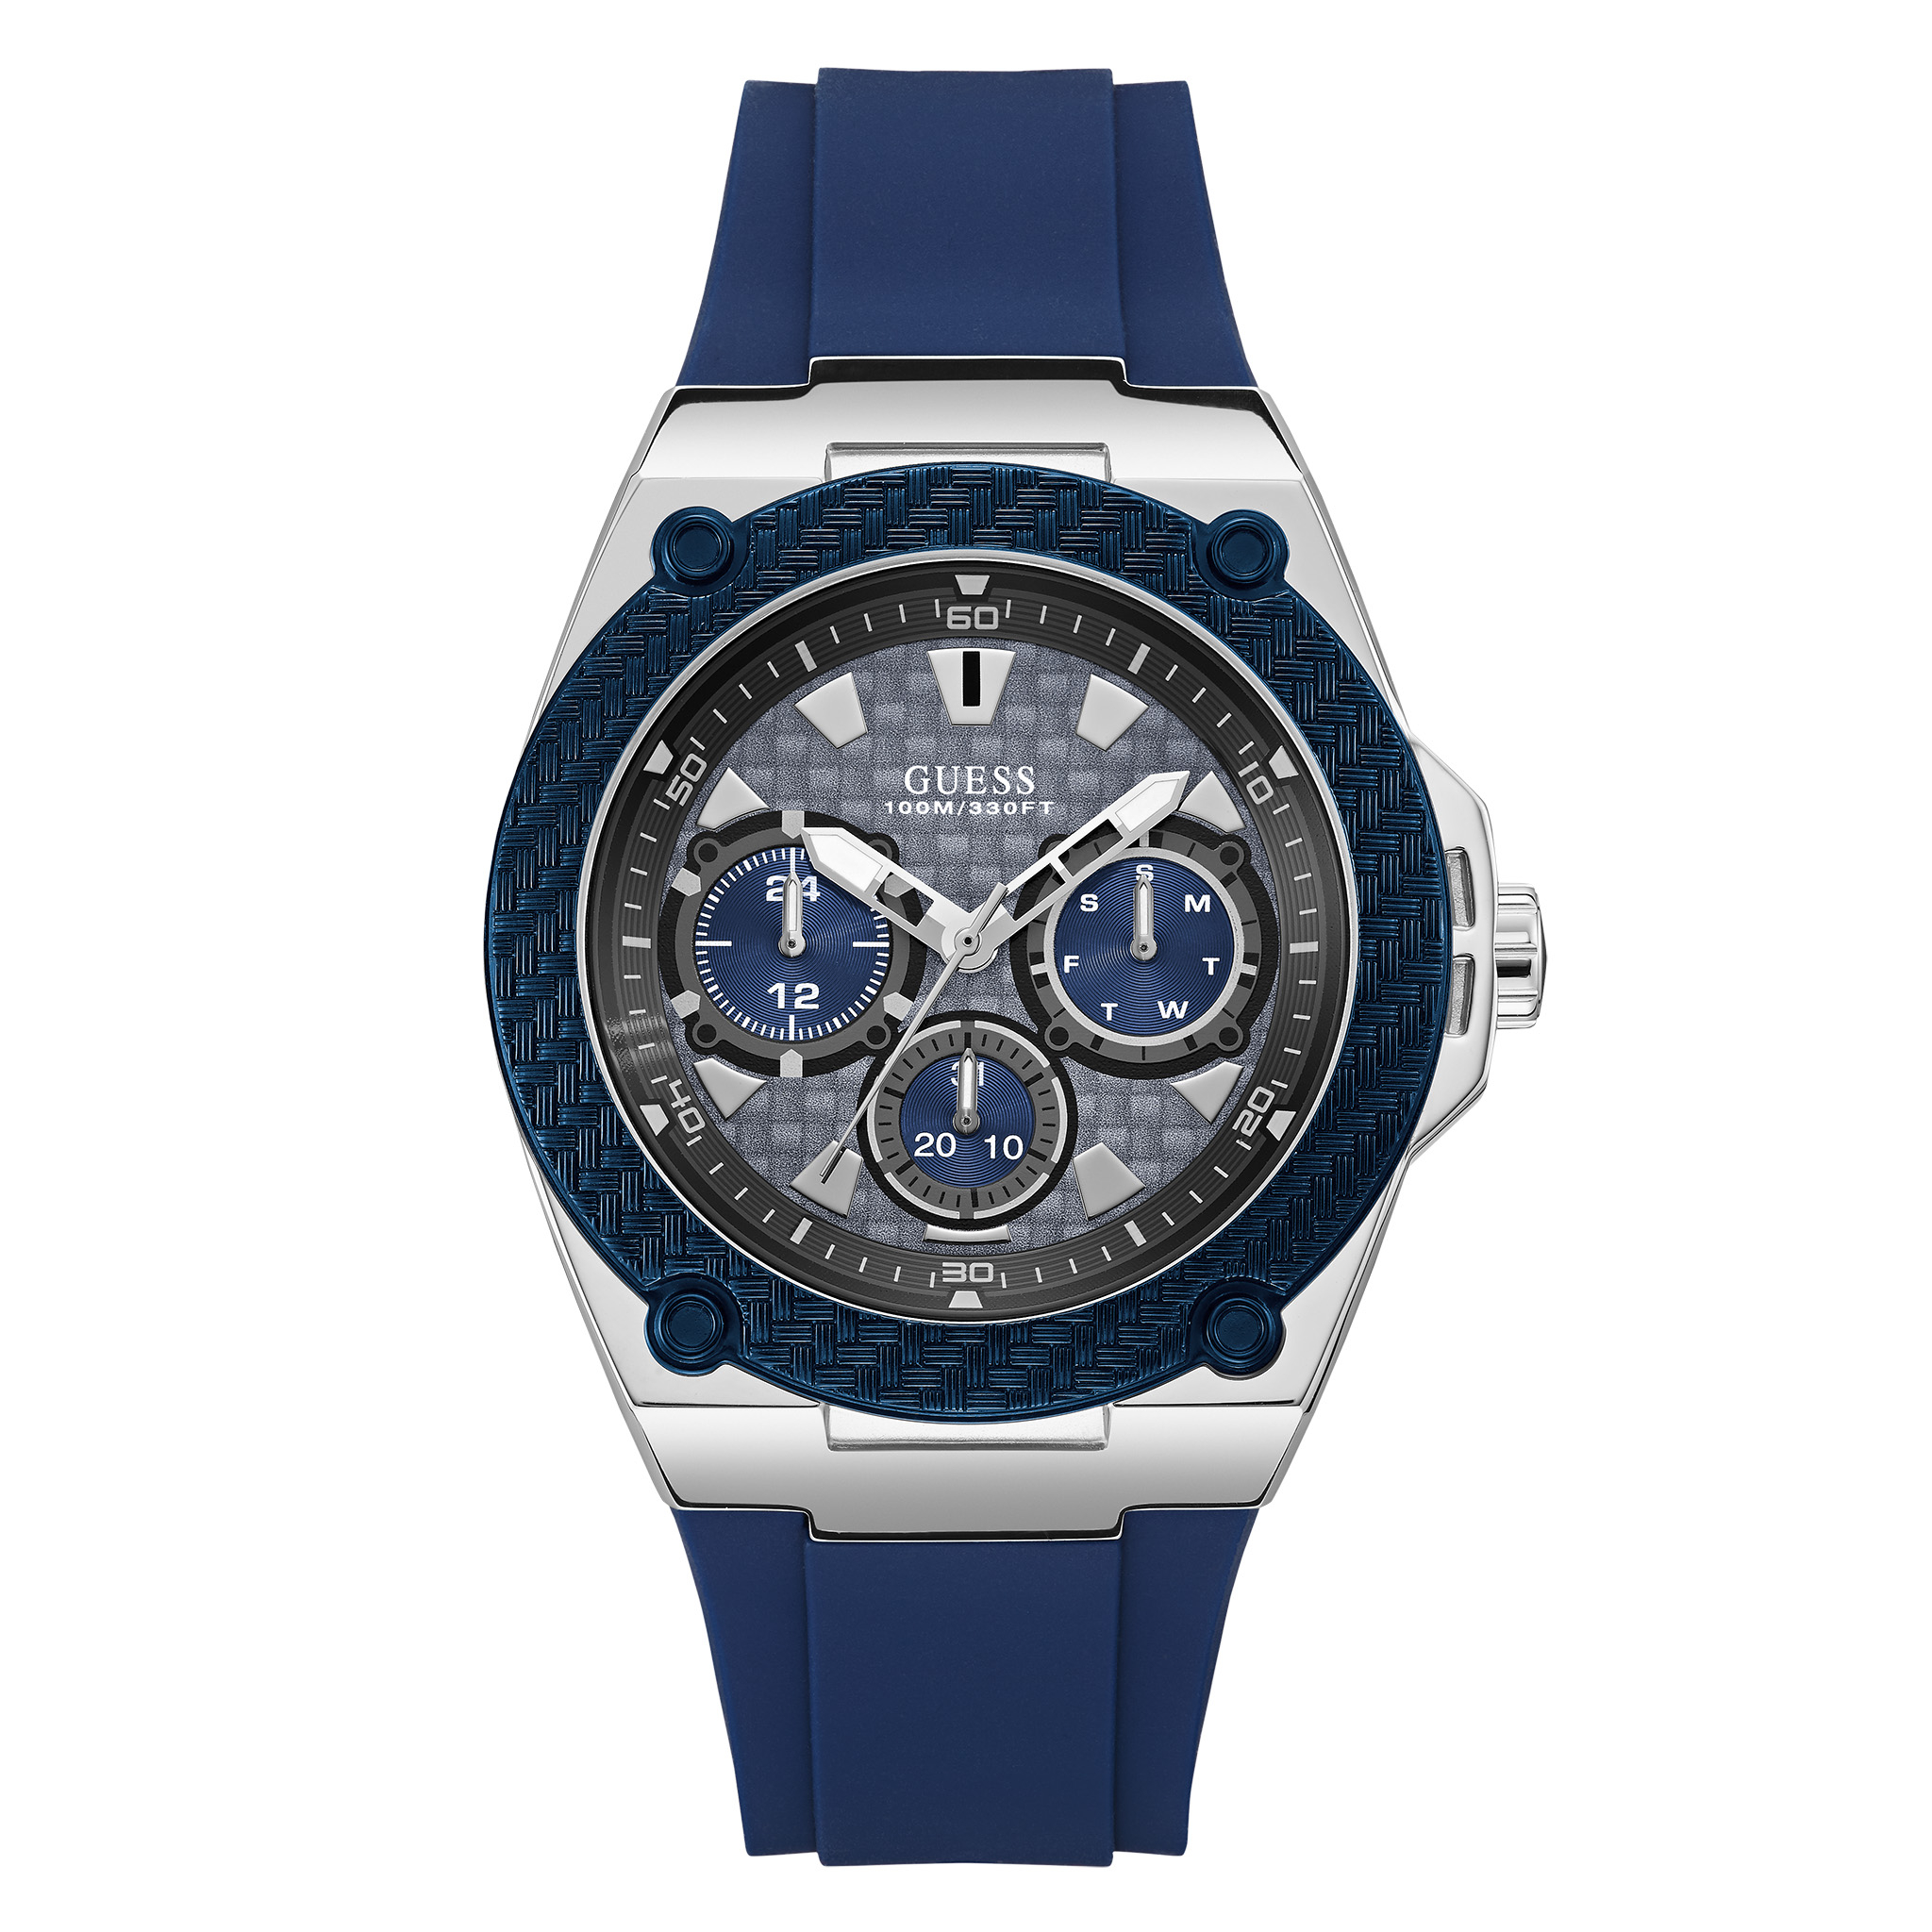 Ceas GUESS - Legacy W1049G1 NAVY/SILVER/NAVY